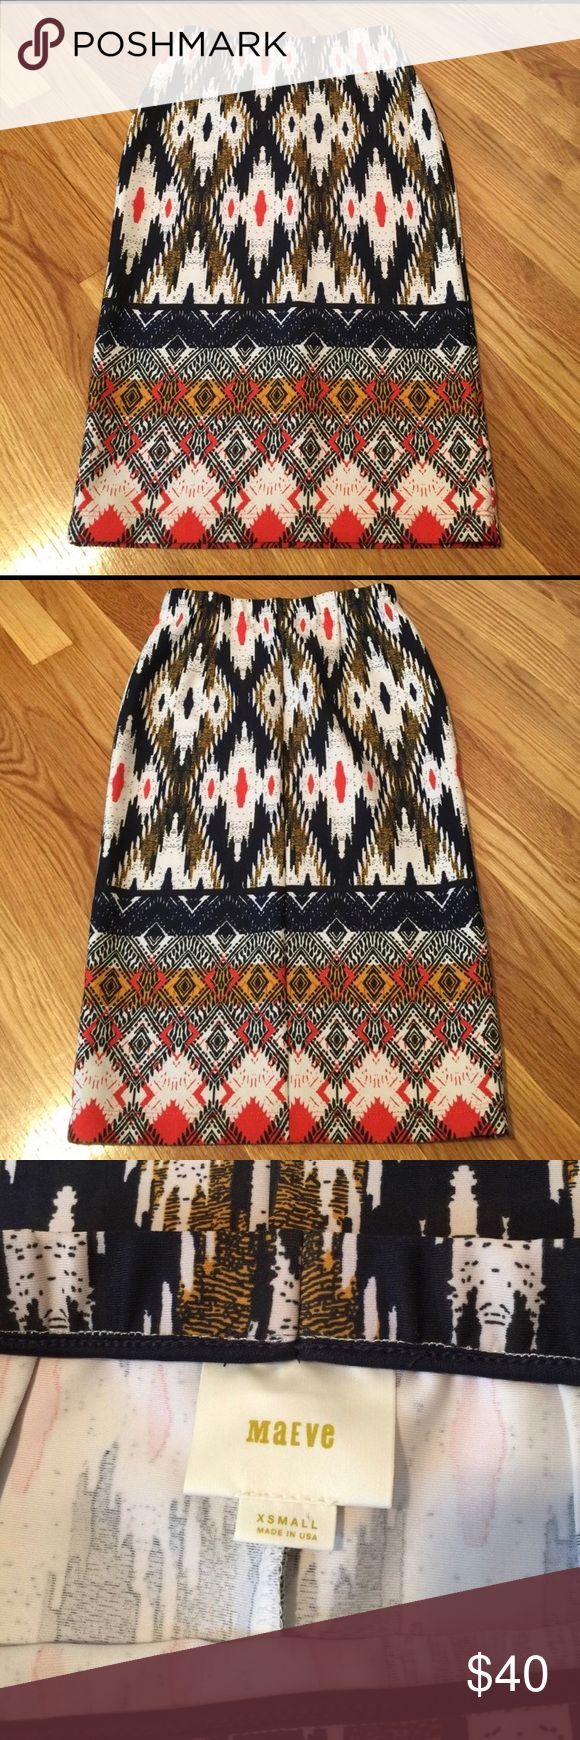 Anthropologie tribal print skirt NWOT anthropologie tribal print skirt! (Brand is Mauve) elastic waist. There is some stretch to the fabric. Adorable with a black tee! Can be dressed up or down Anthropologie Skirts